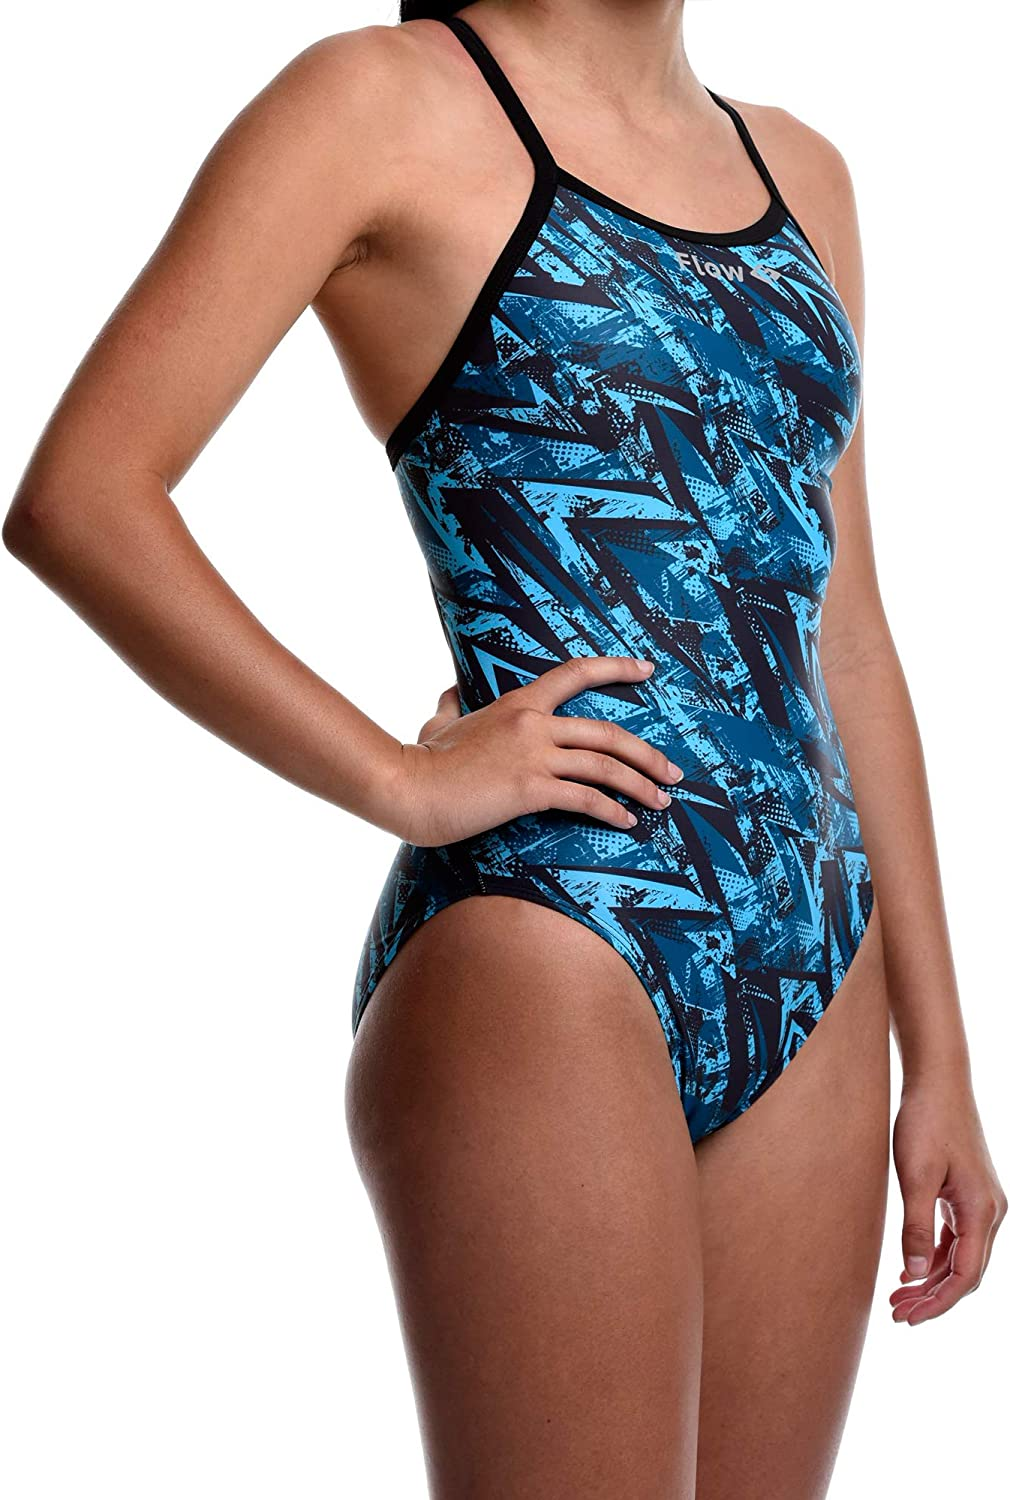 Flow Funky Swimsuits for Girls Size 23 to 30 One Piece Competition Swim Suit in Eight Rad Swimsuit Designs